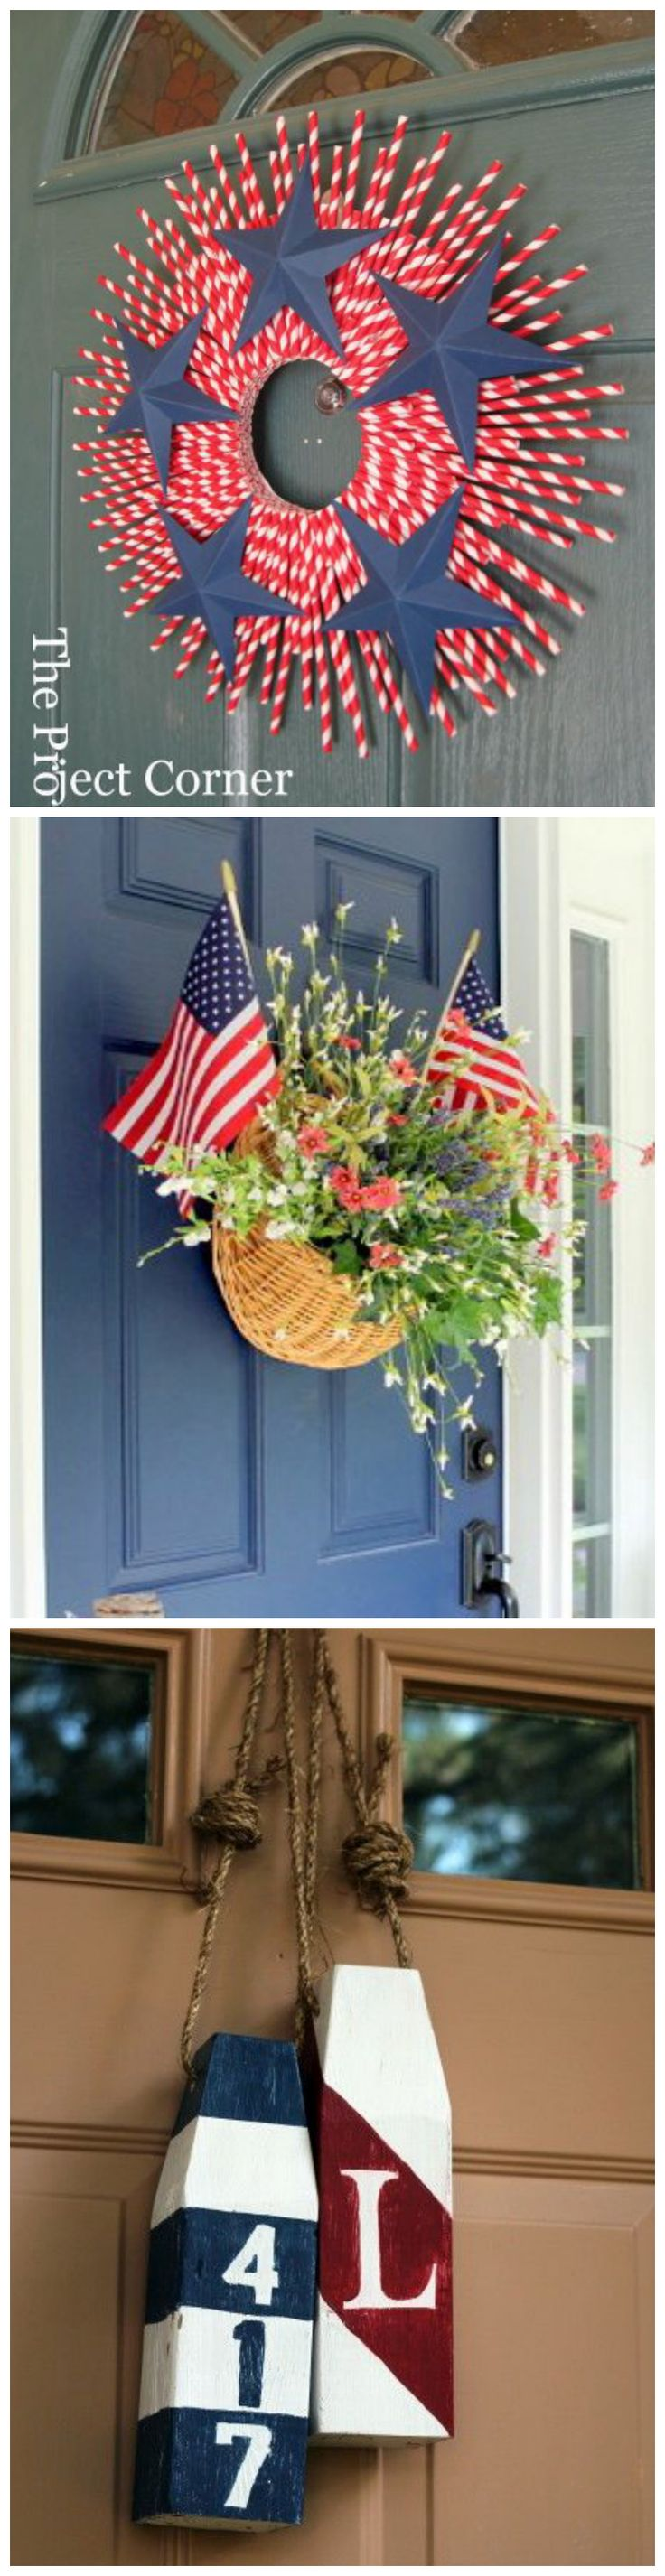 314 best ReD WhitE And BluE .. images on Pinterest | 4th of july ...